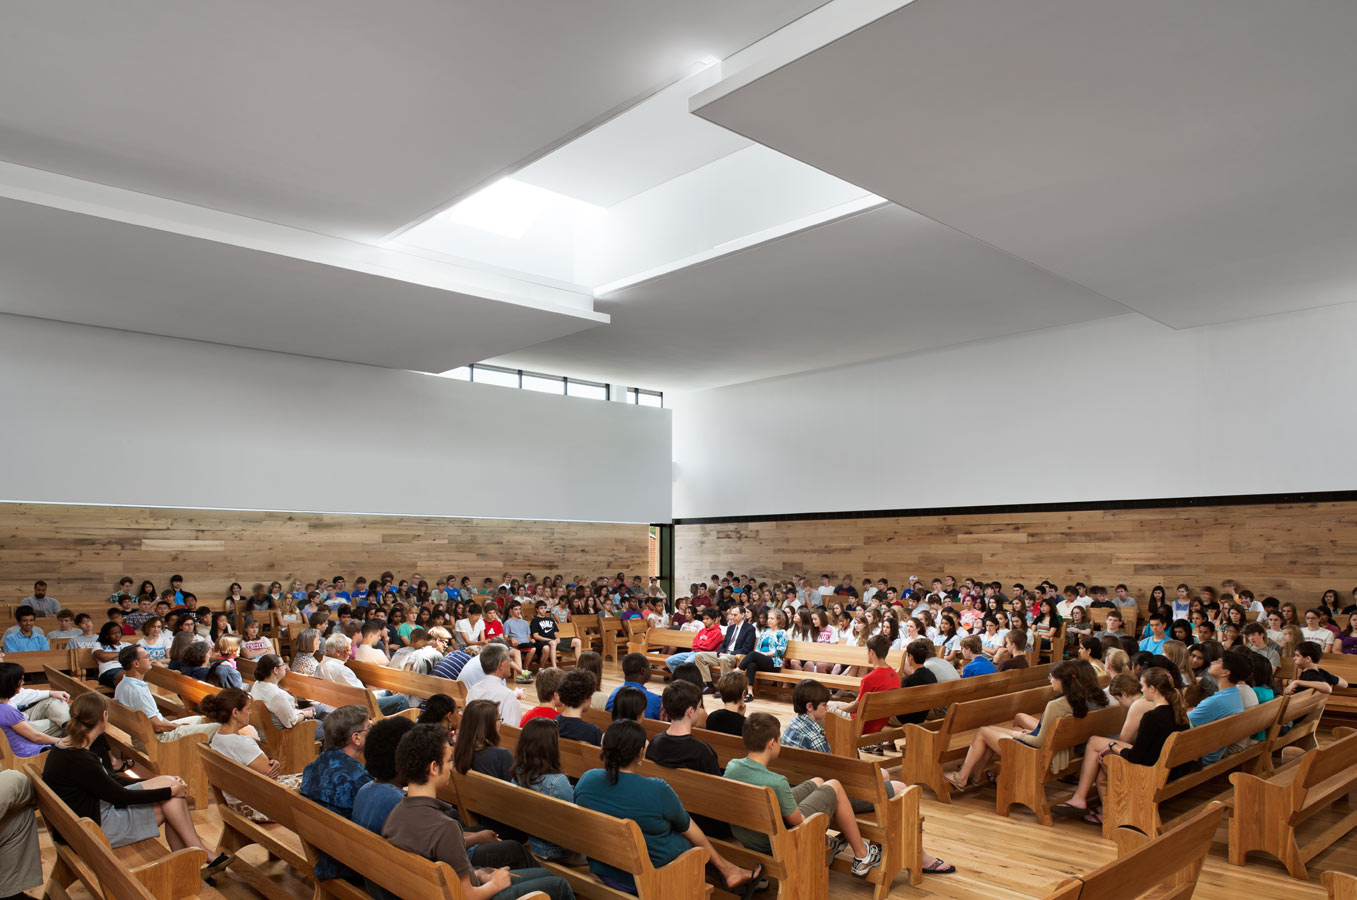 <p>The Meeting House is designed to filter light, views, and sounds from the surge of activity around the center of the campus. Panels on the ceiling are arranged in a pinwheel pattern around a central skylight, a void of light around which form and order are created. <br><small>© Michael Moran/OTTO</small></p>